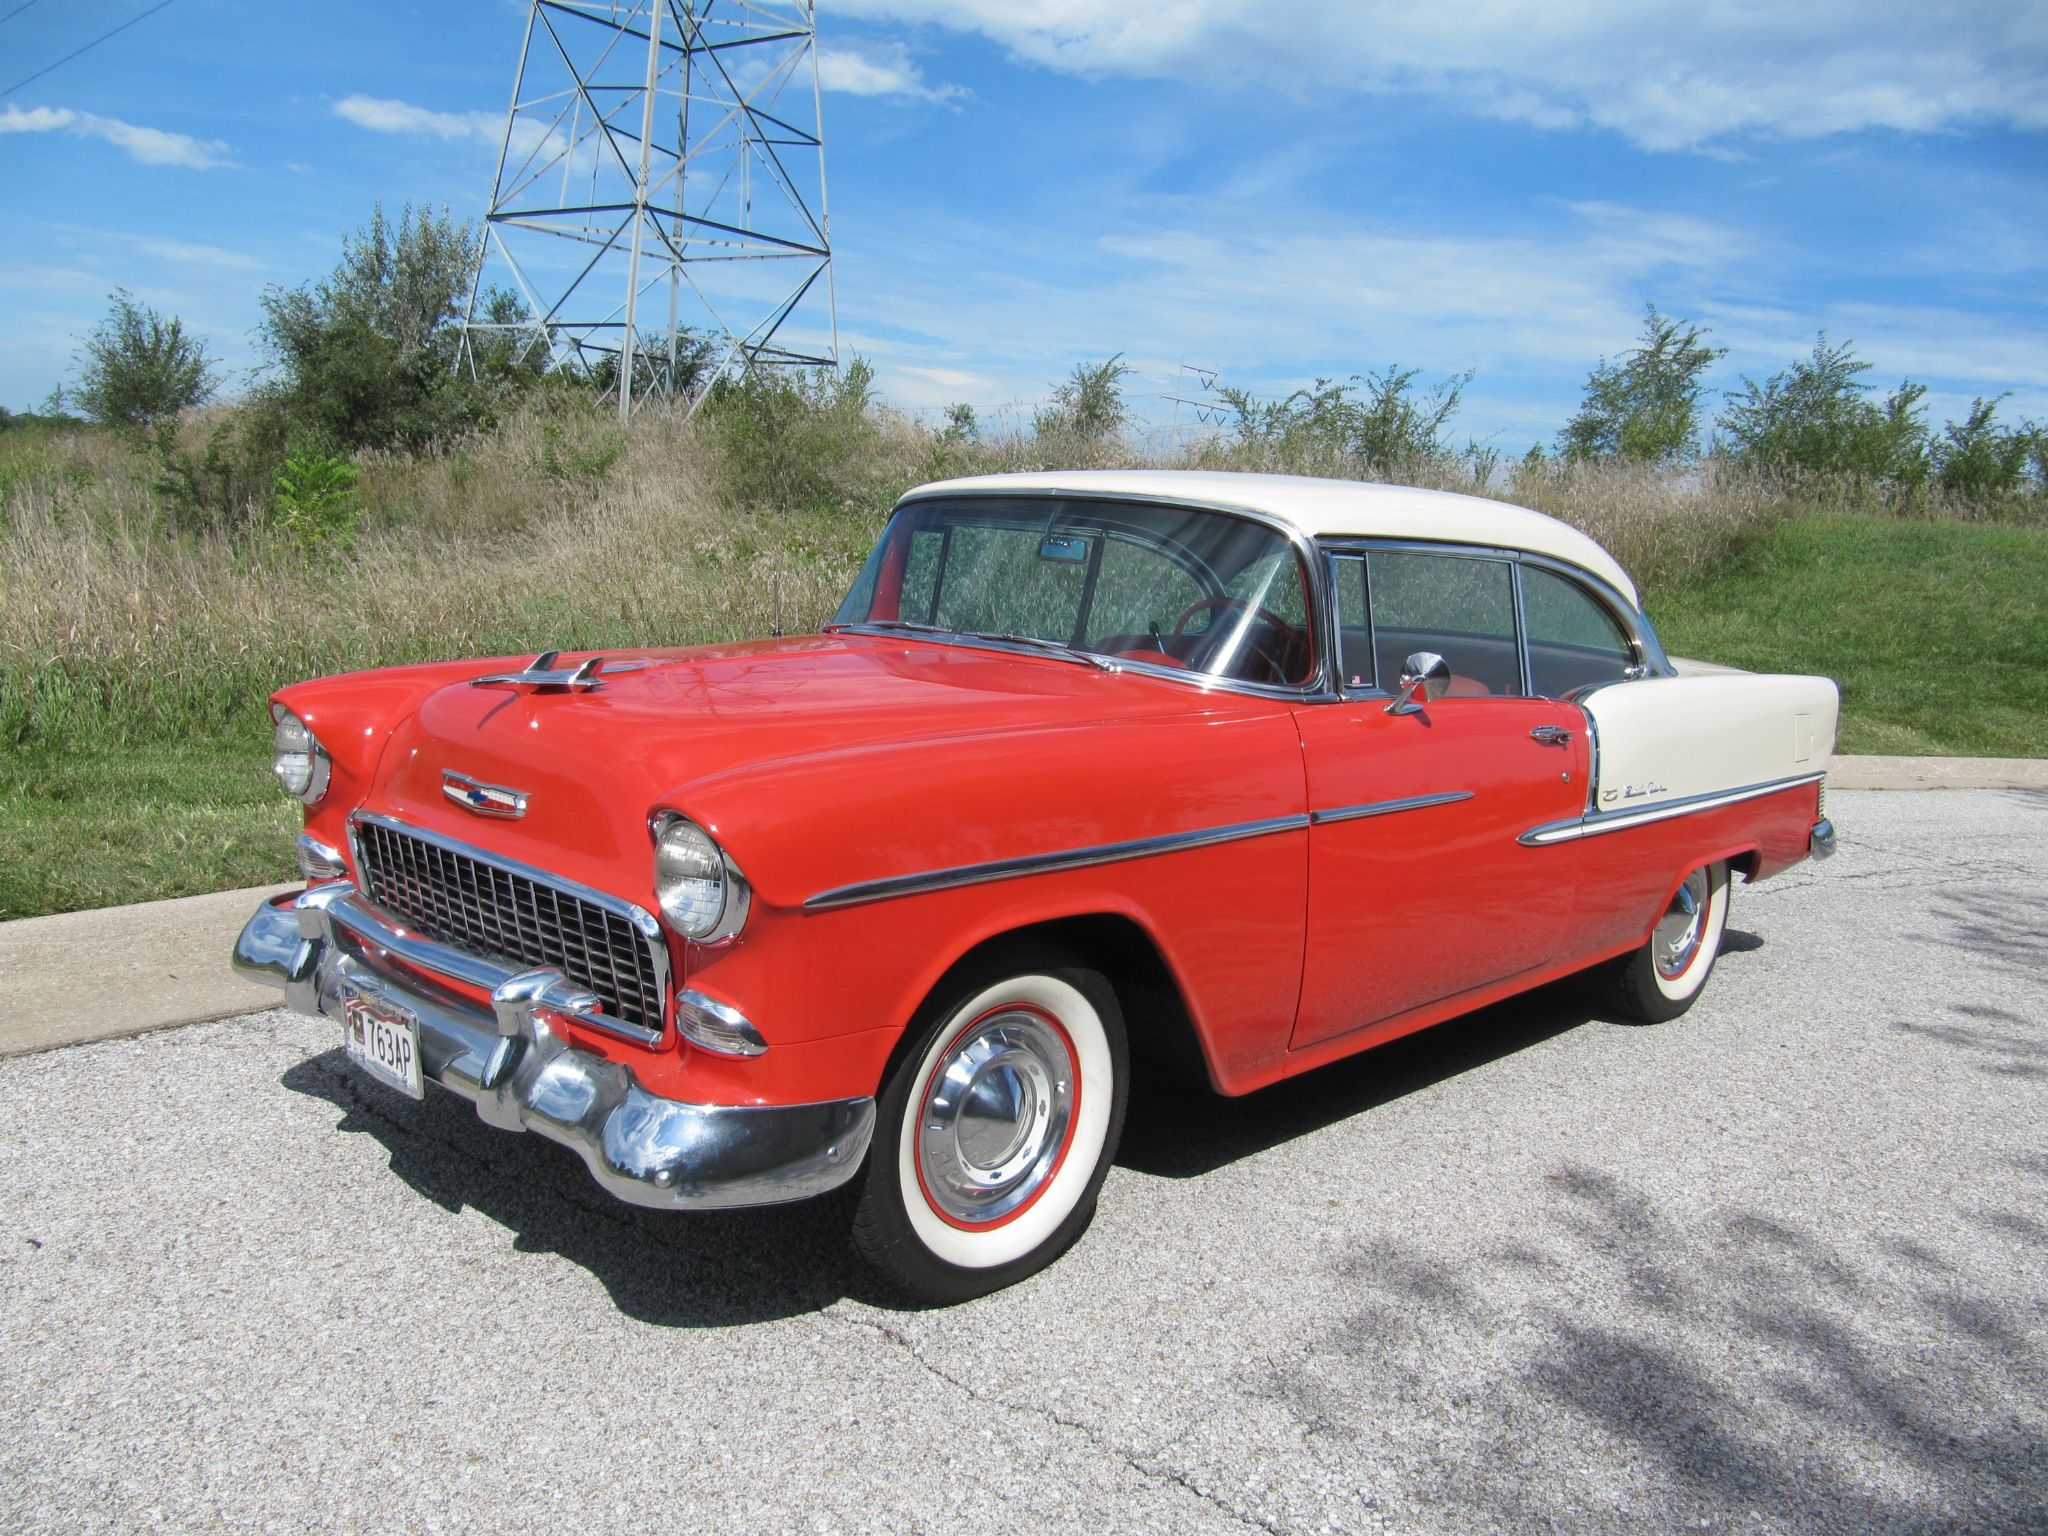 1955 Chevrolet Bel Air Sport Coupe Factory Air Conditioning For Sale Autabuy Com